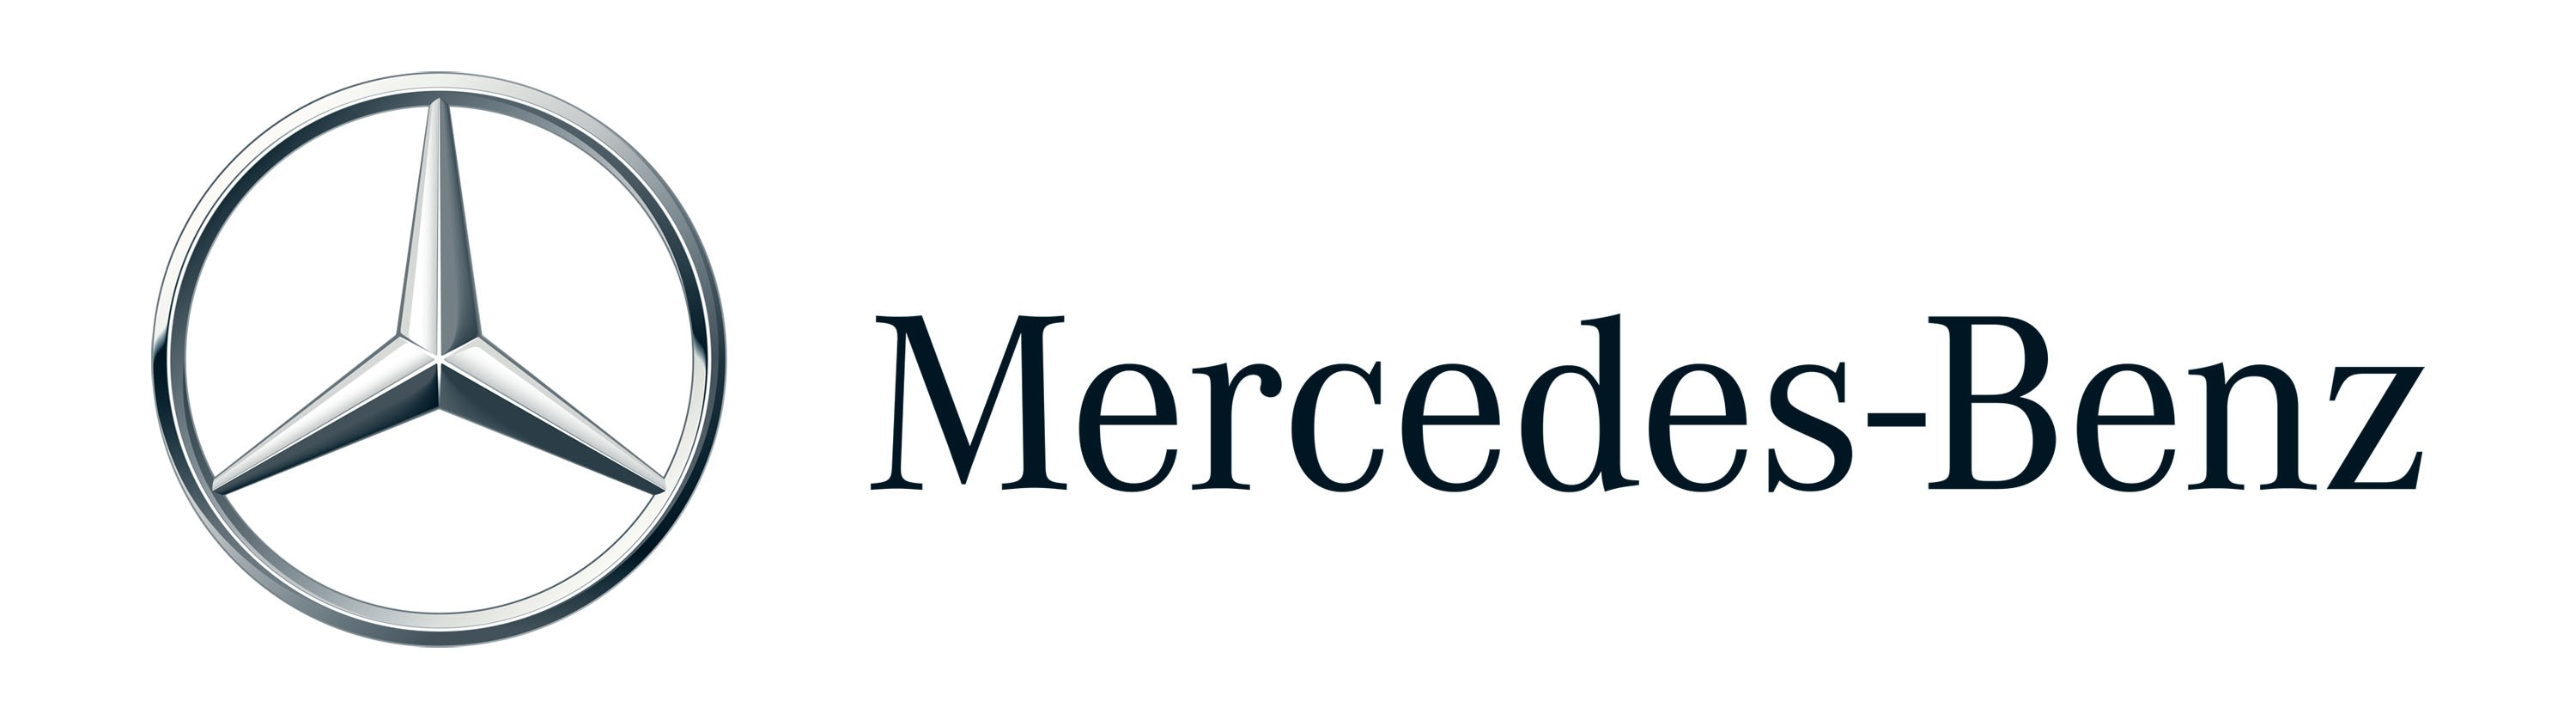 Mercedes Benz Logo Wallpapers Pictures Images 3000x838